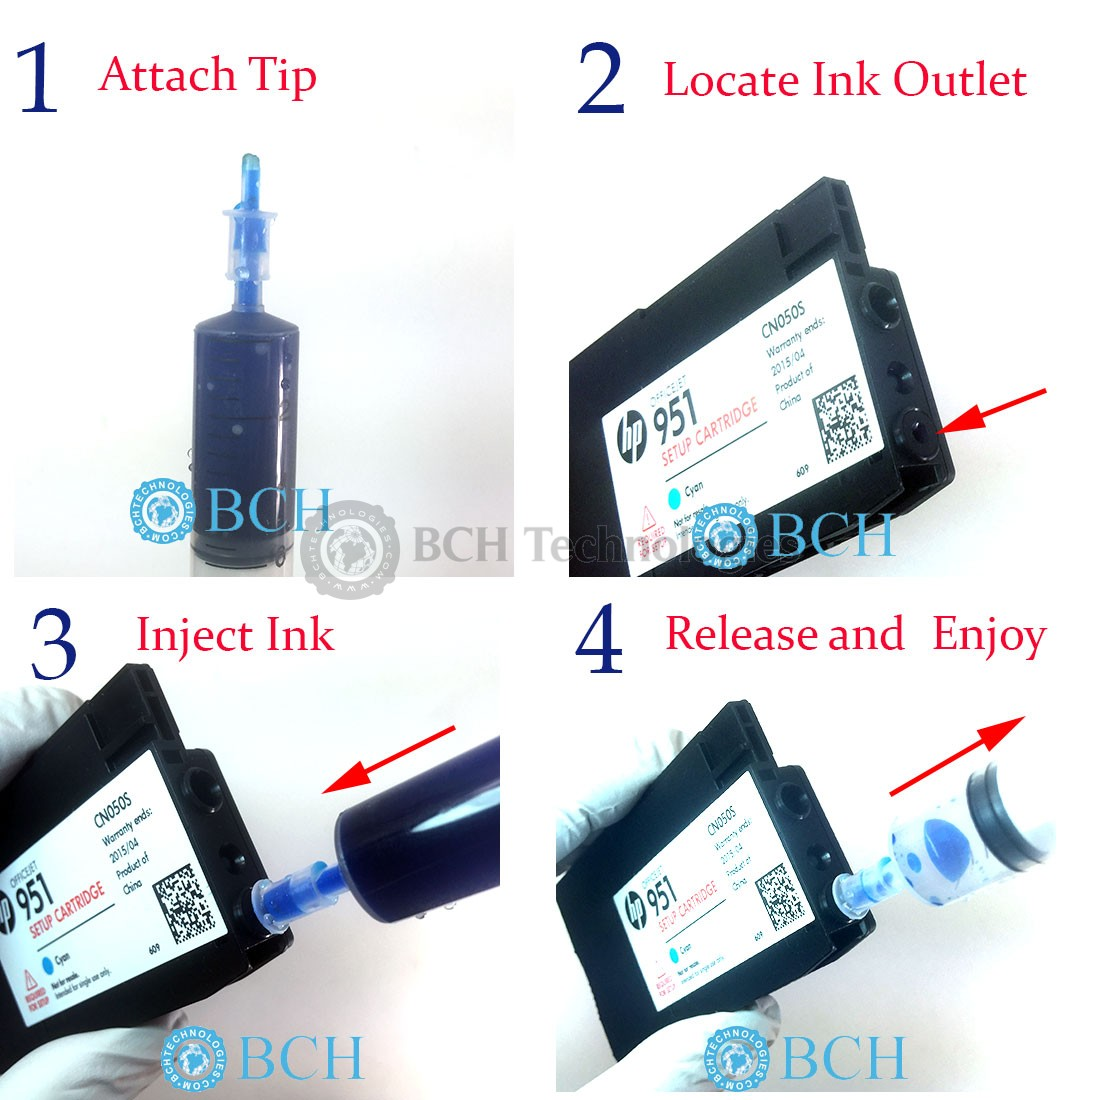 950 Ink How To Refill Oem Hp 950 951 932 933 Cartridges Bch